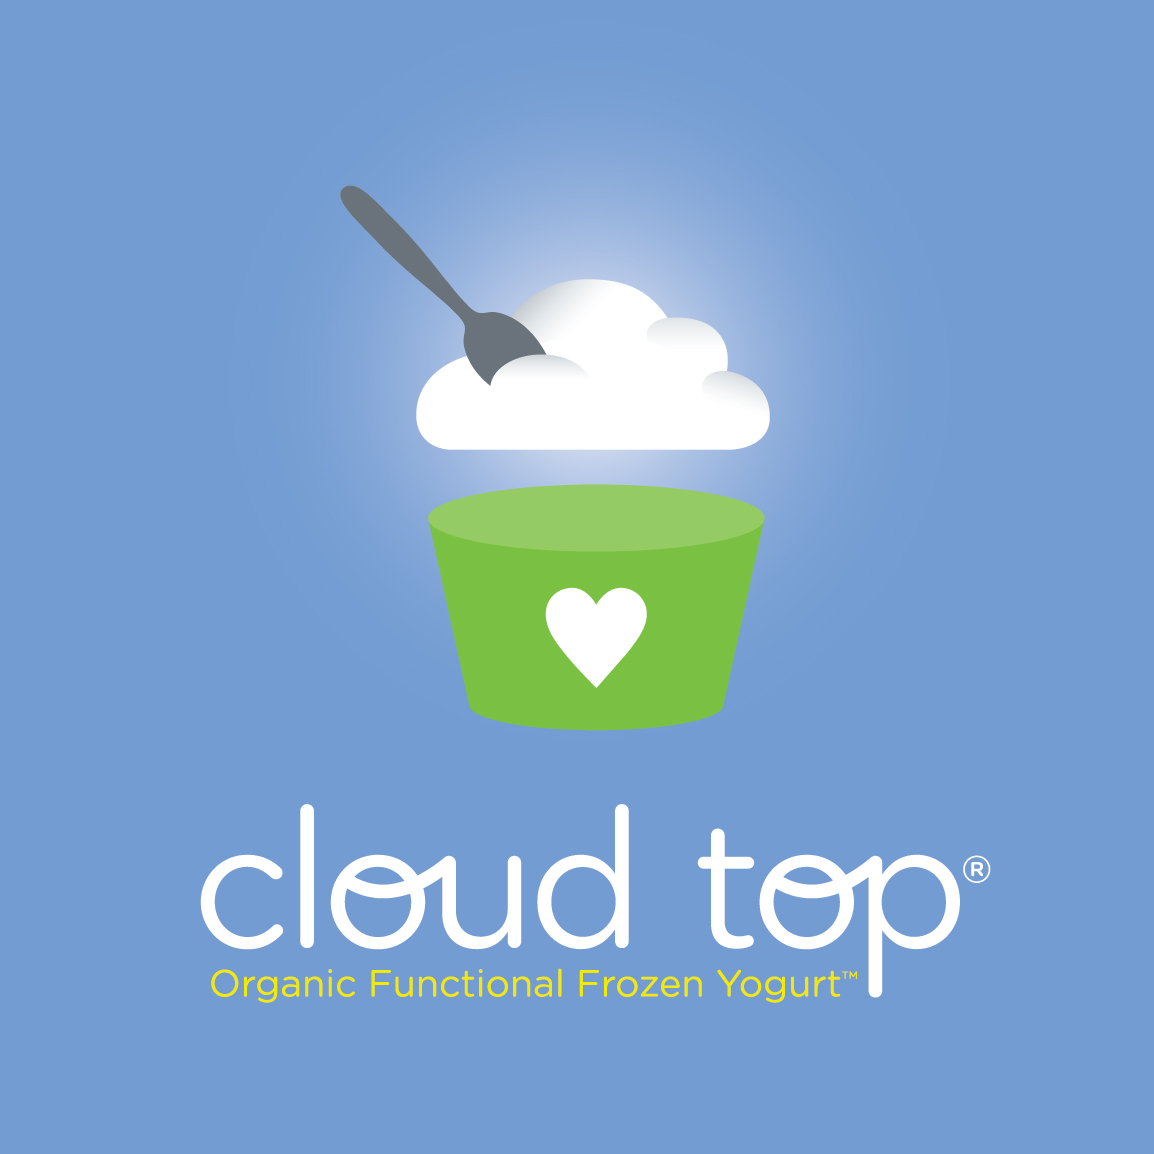 Frozen Yogurt Logo Cloud top company logo